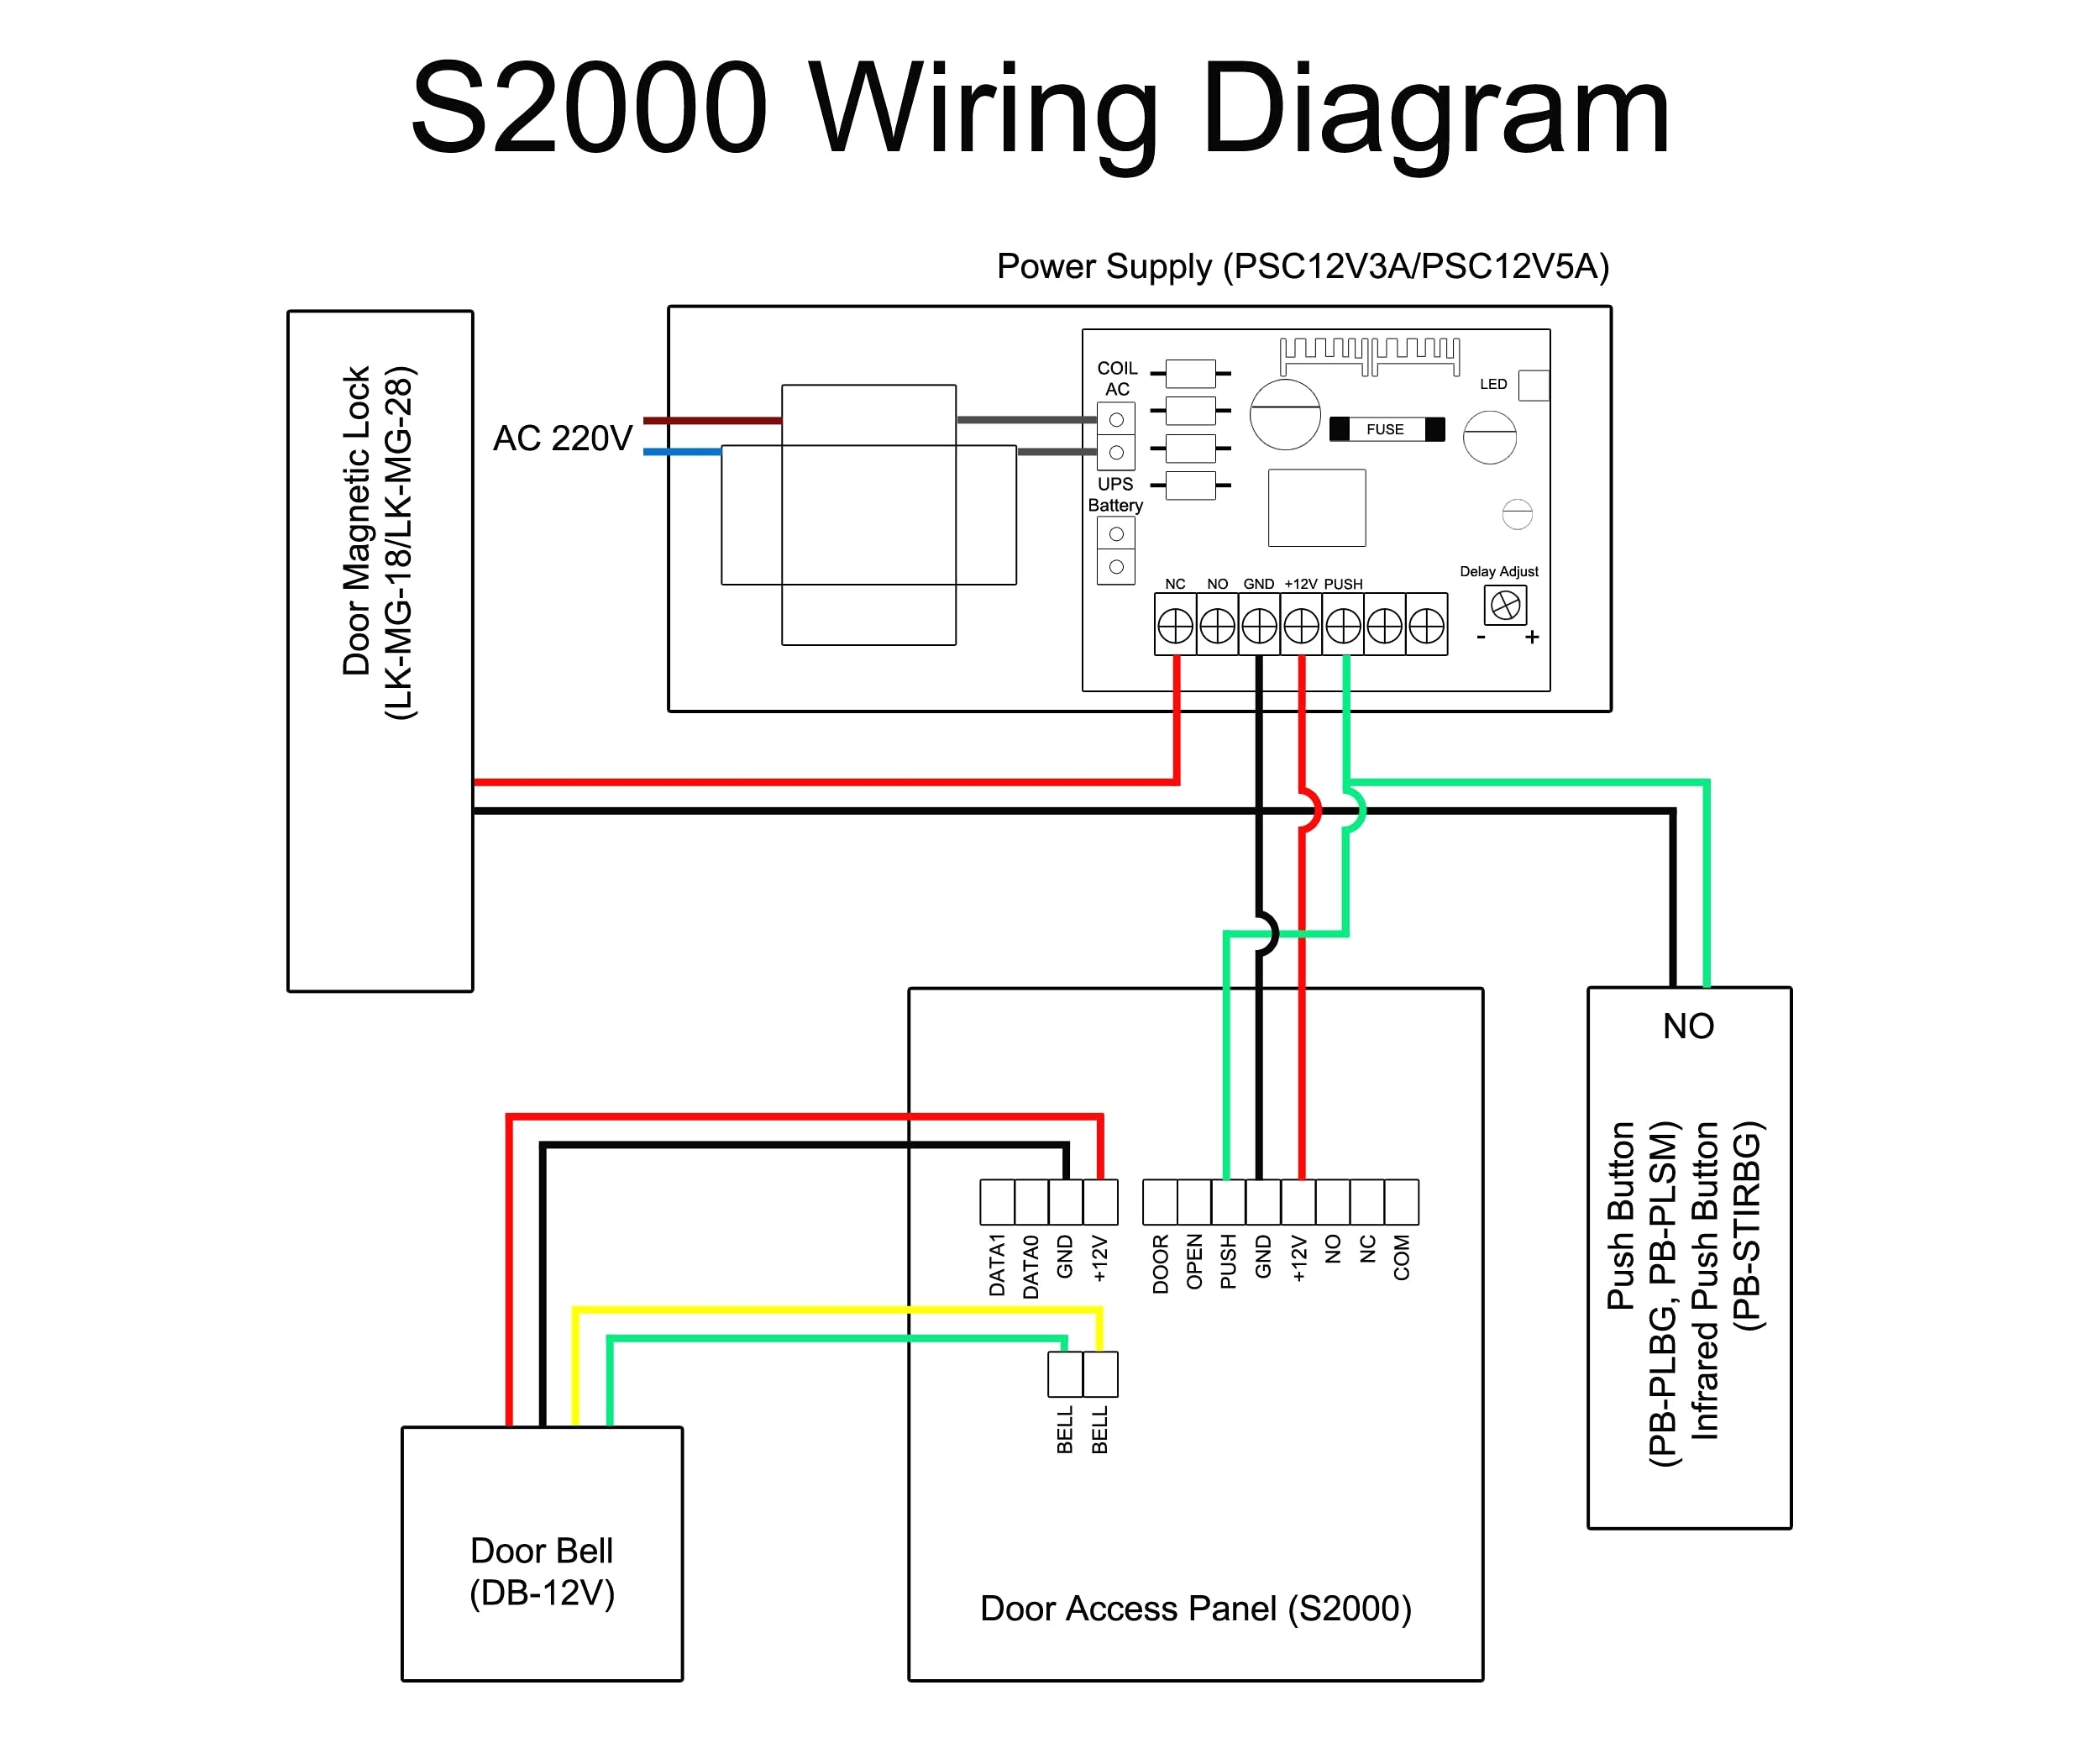 swann security camera n3960 wiring diagram Download-Swann Security Camera N3960 Wiring Diagram Security Camera Wire Color Diagram Elegant Wireless Camera Wiring 9-q